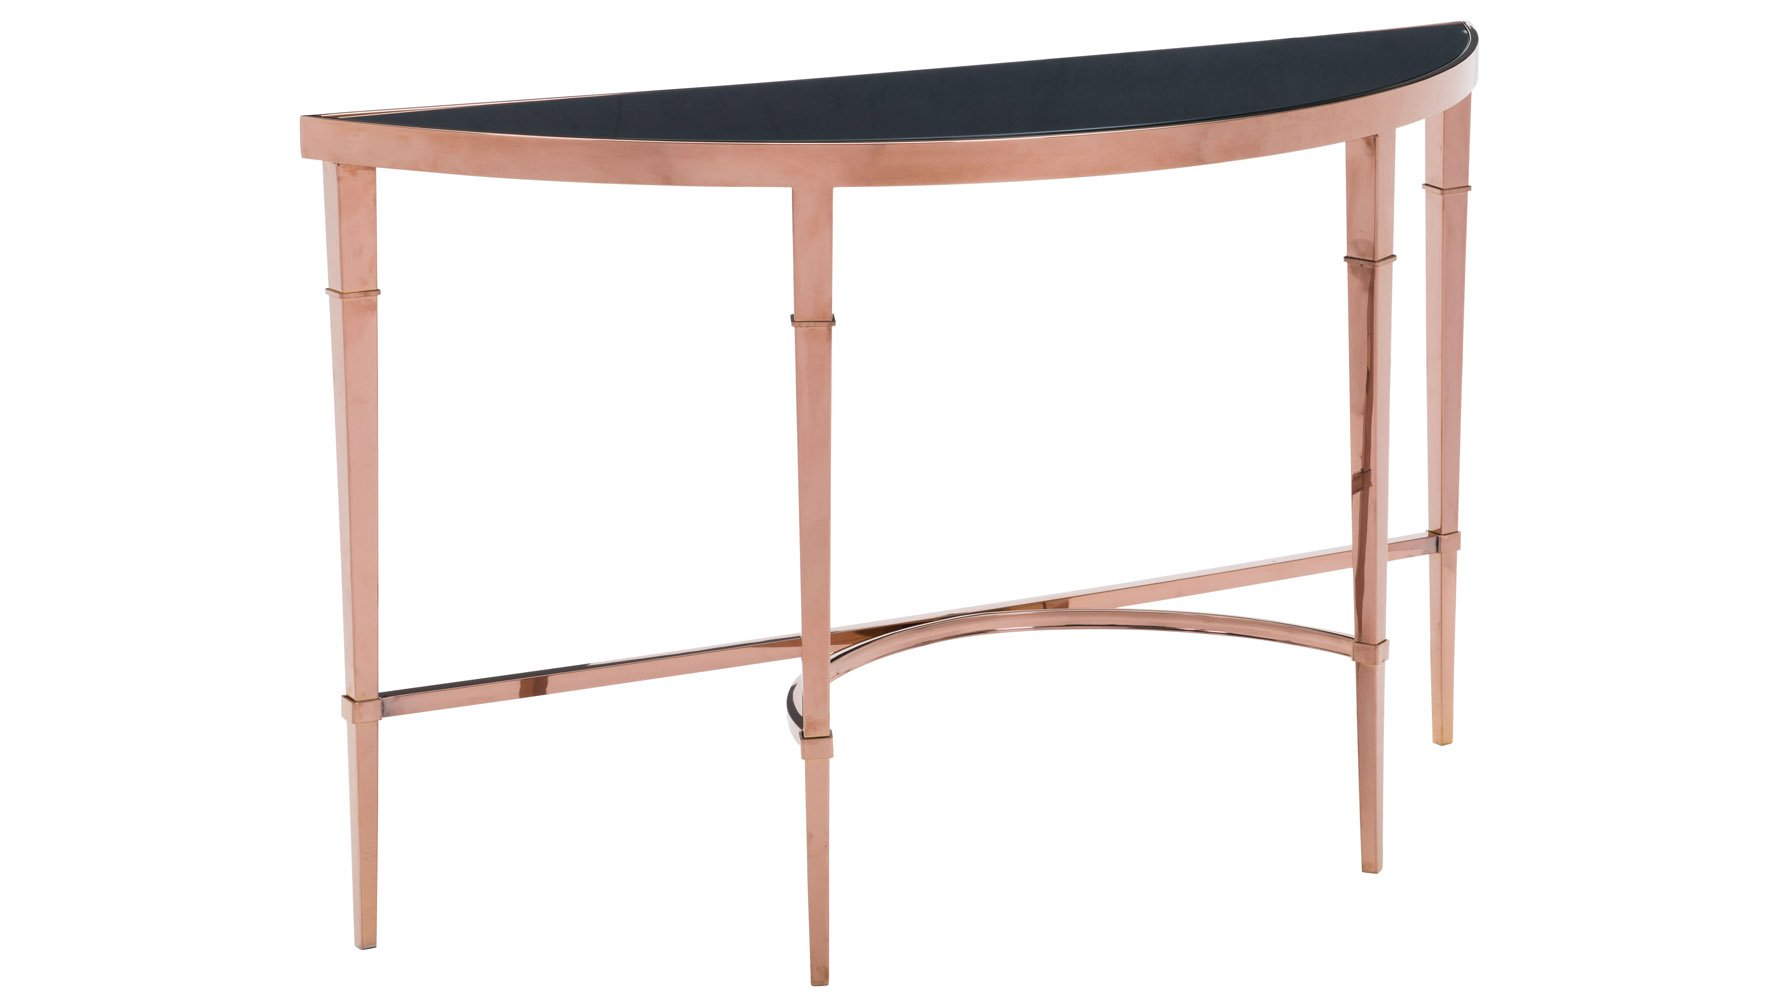 modern console tables side coffee furniture pascale glass table rose gold and black zuri extra small accent pier one imports coupons white decorative storage cabinet tall square